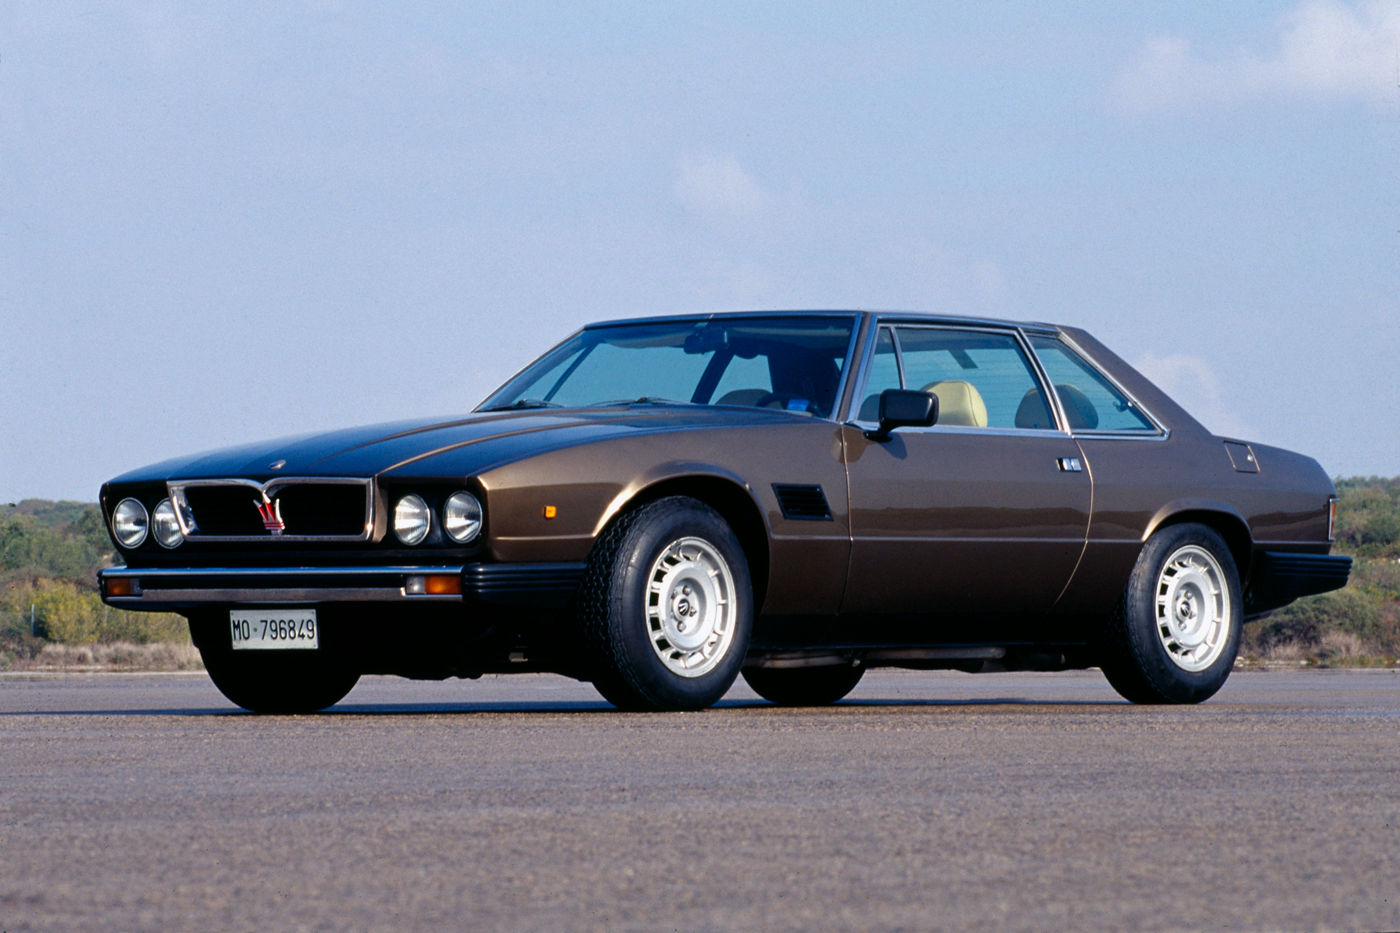 1976 Maserati Kyalami - exterior view of the classic sports car model